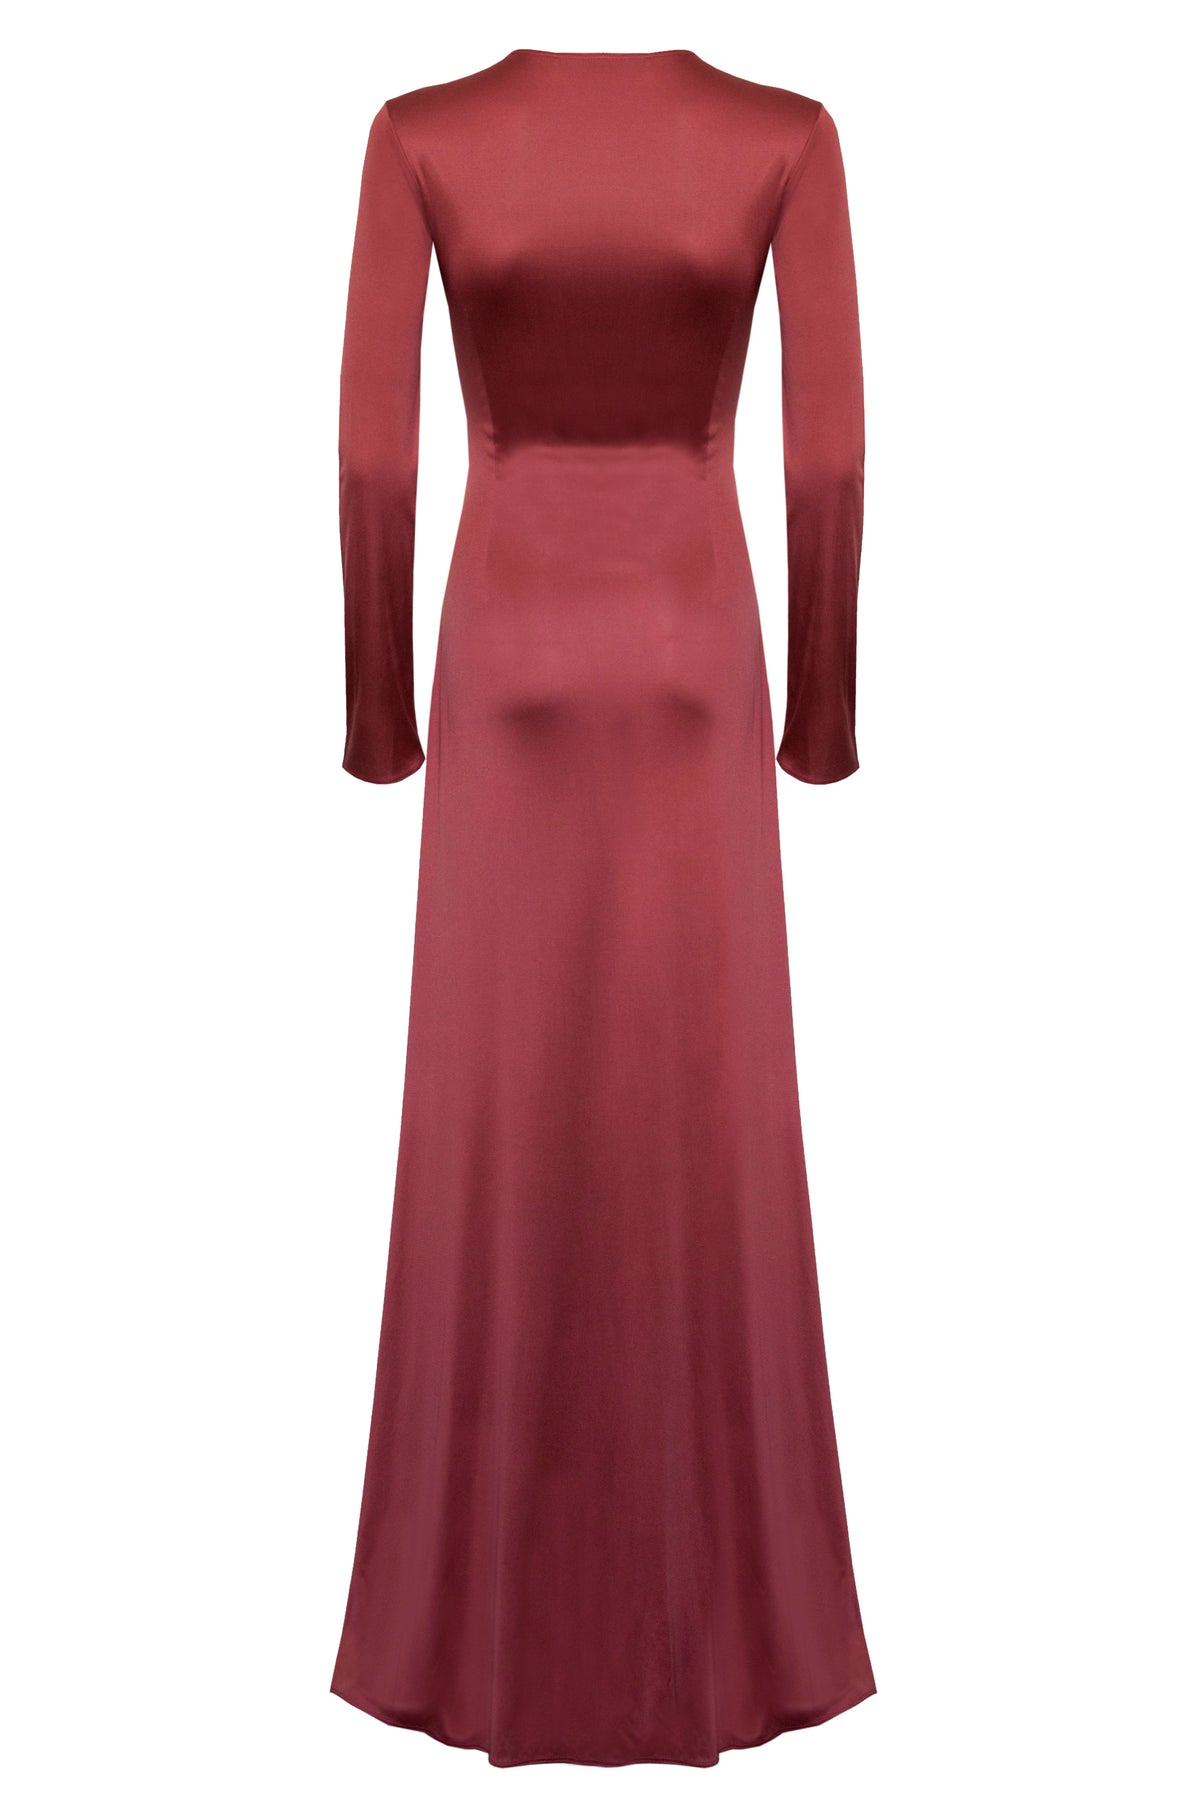 Leonora Jersey Dress in Rust